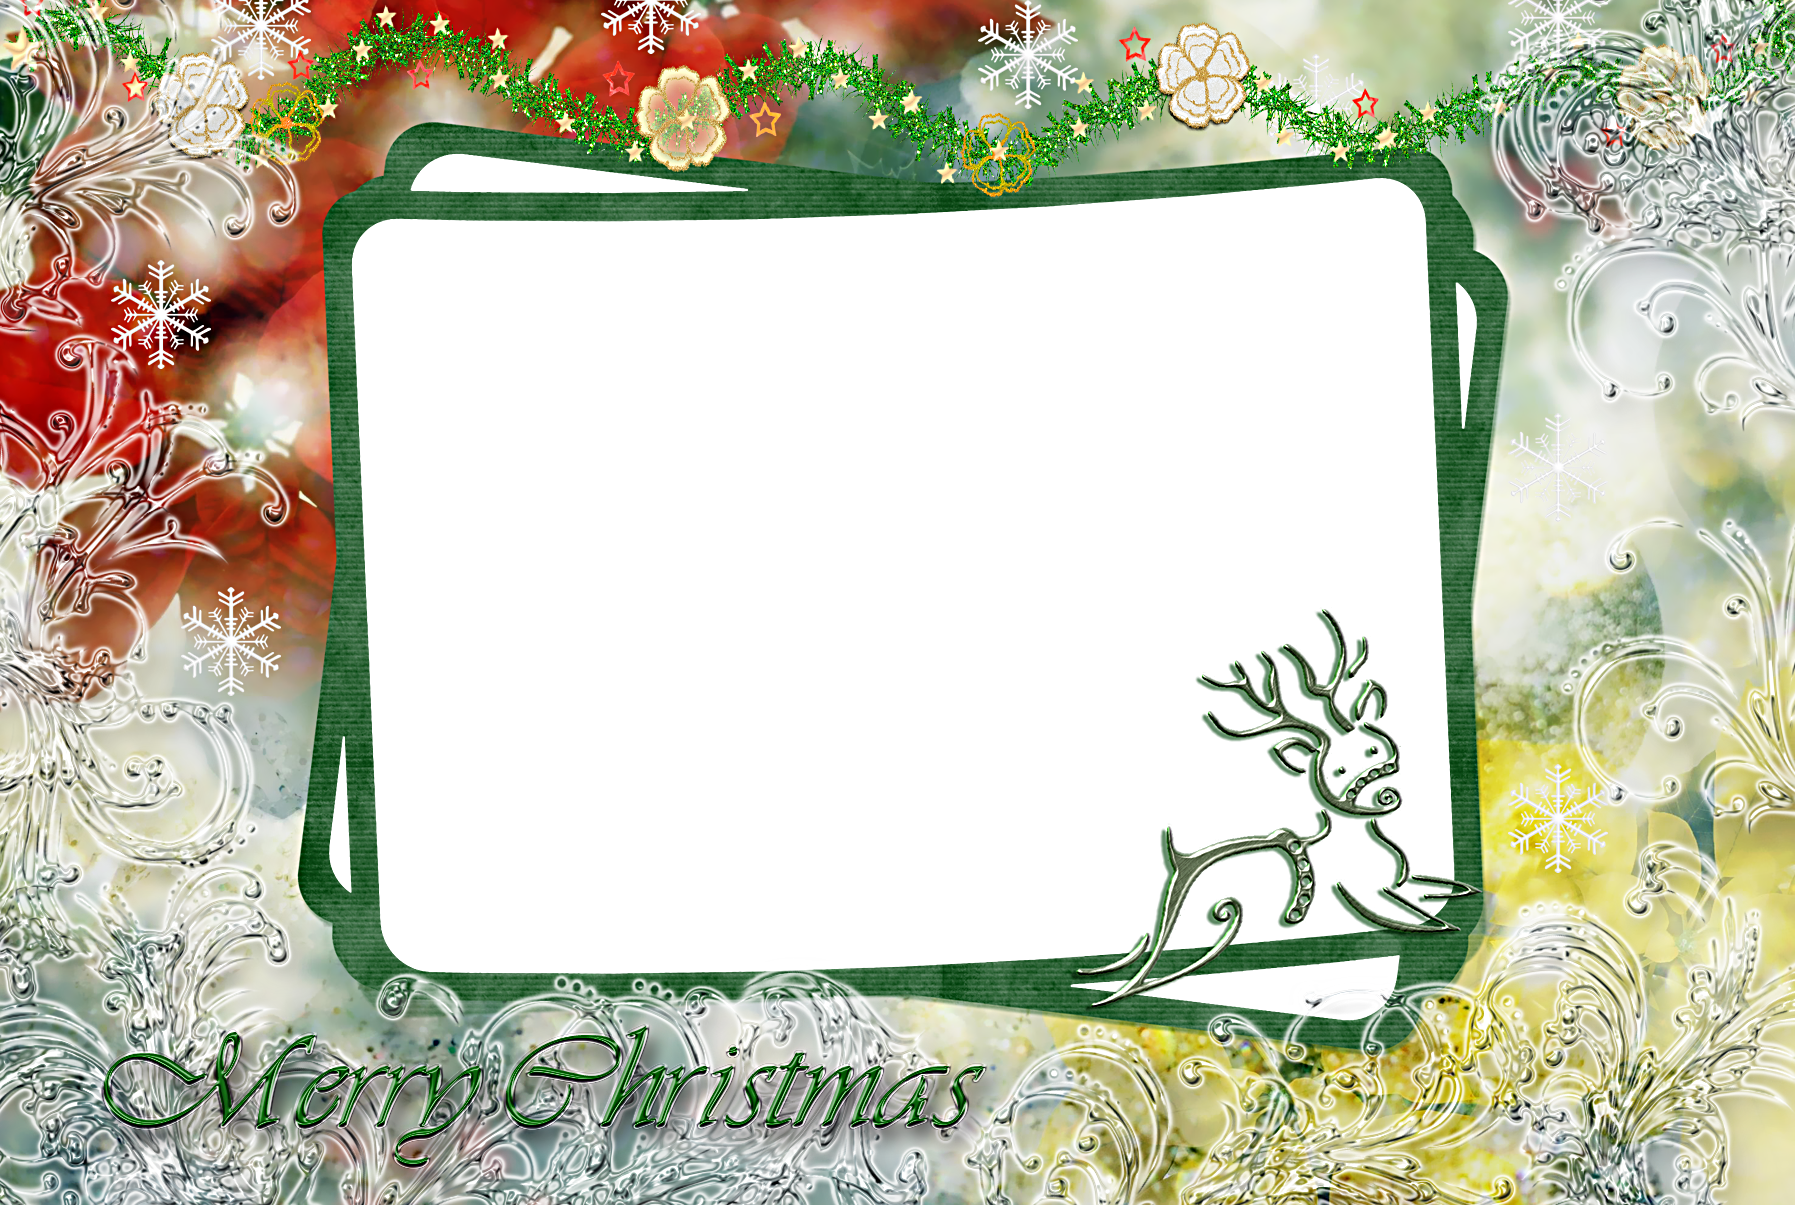 9 christmas frame psd template images christmas for Picture frame templates for photoshop